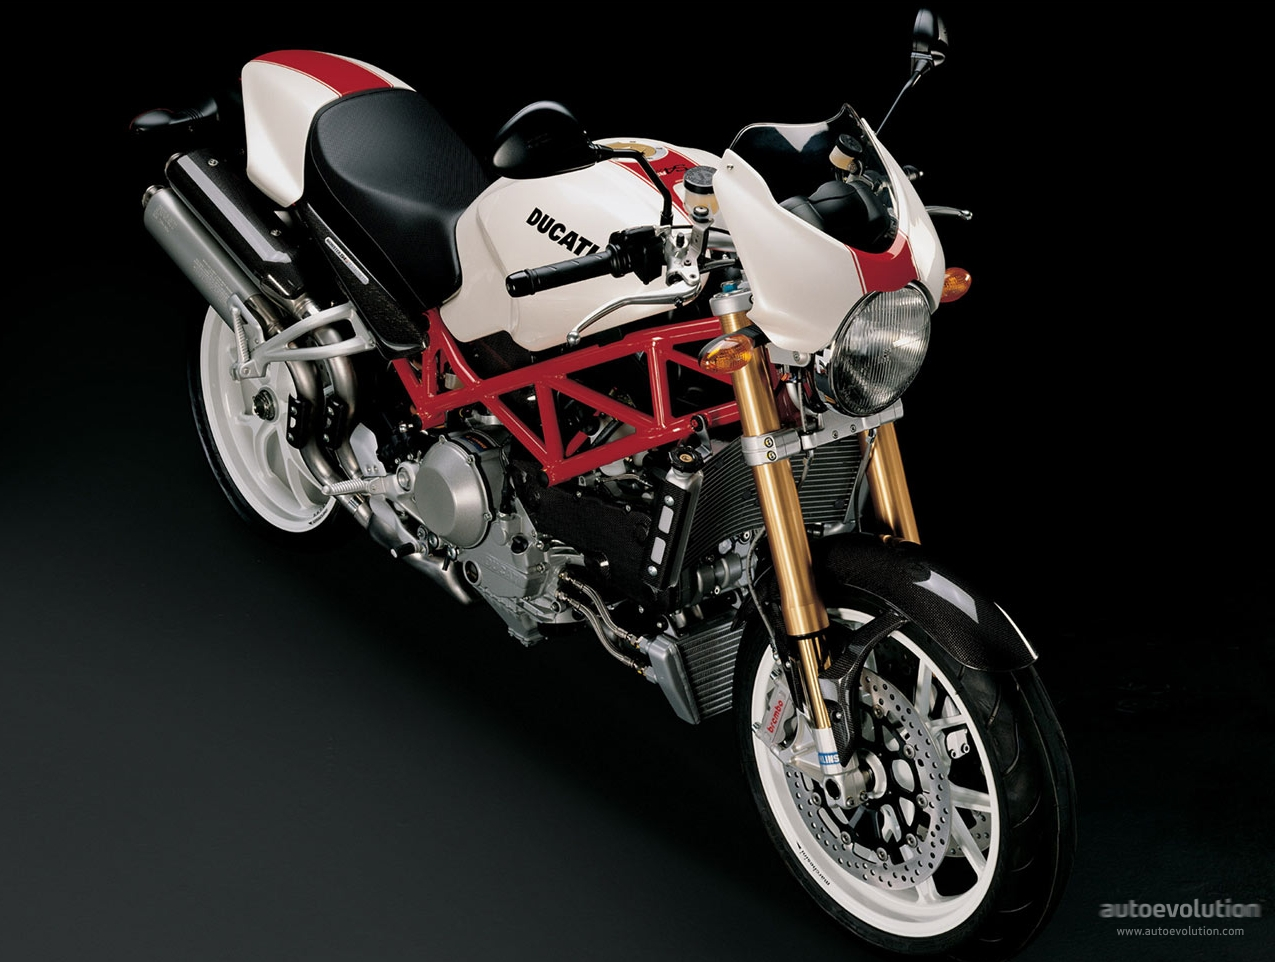 Ducati Monster S4R Testastretta 2008 images #79061